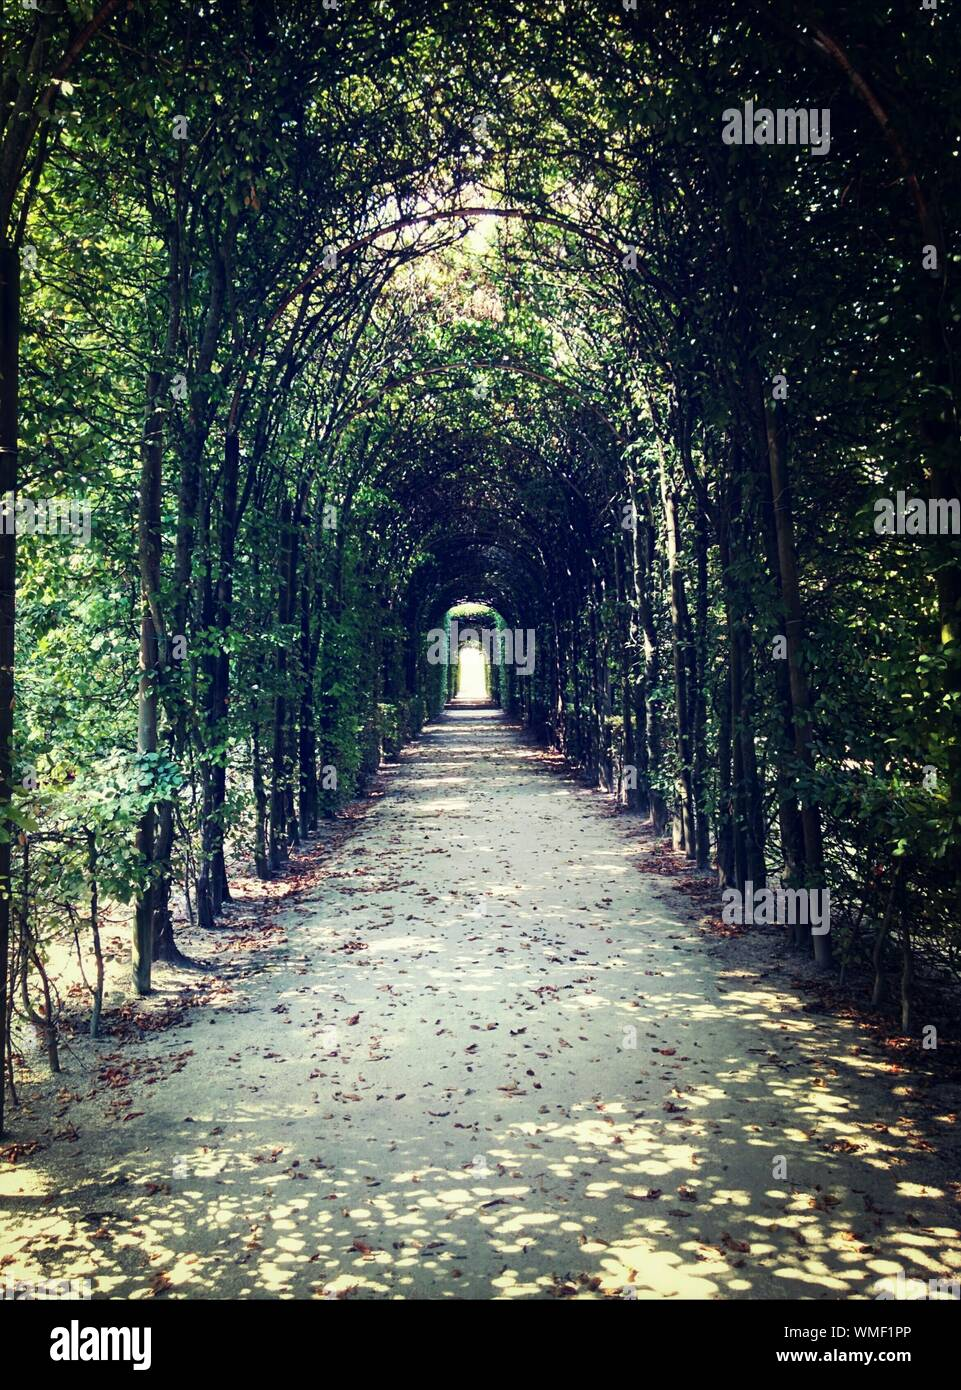 Footpath Through Pergola Covered In Ivy Stock Photo   Alamy